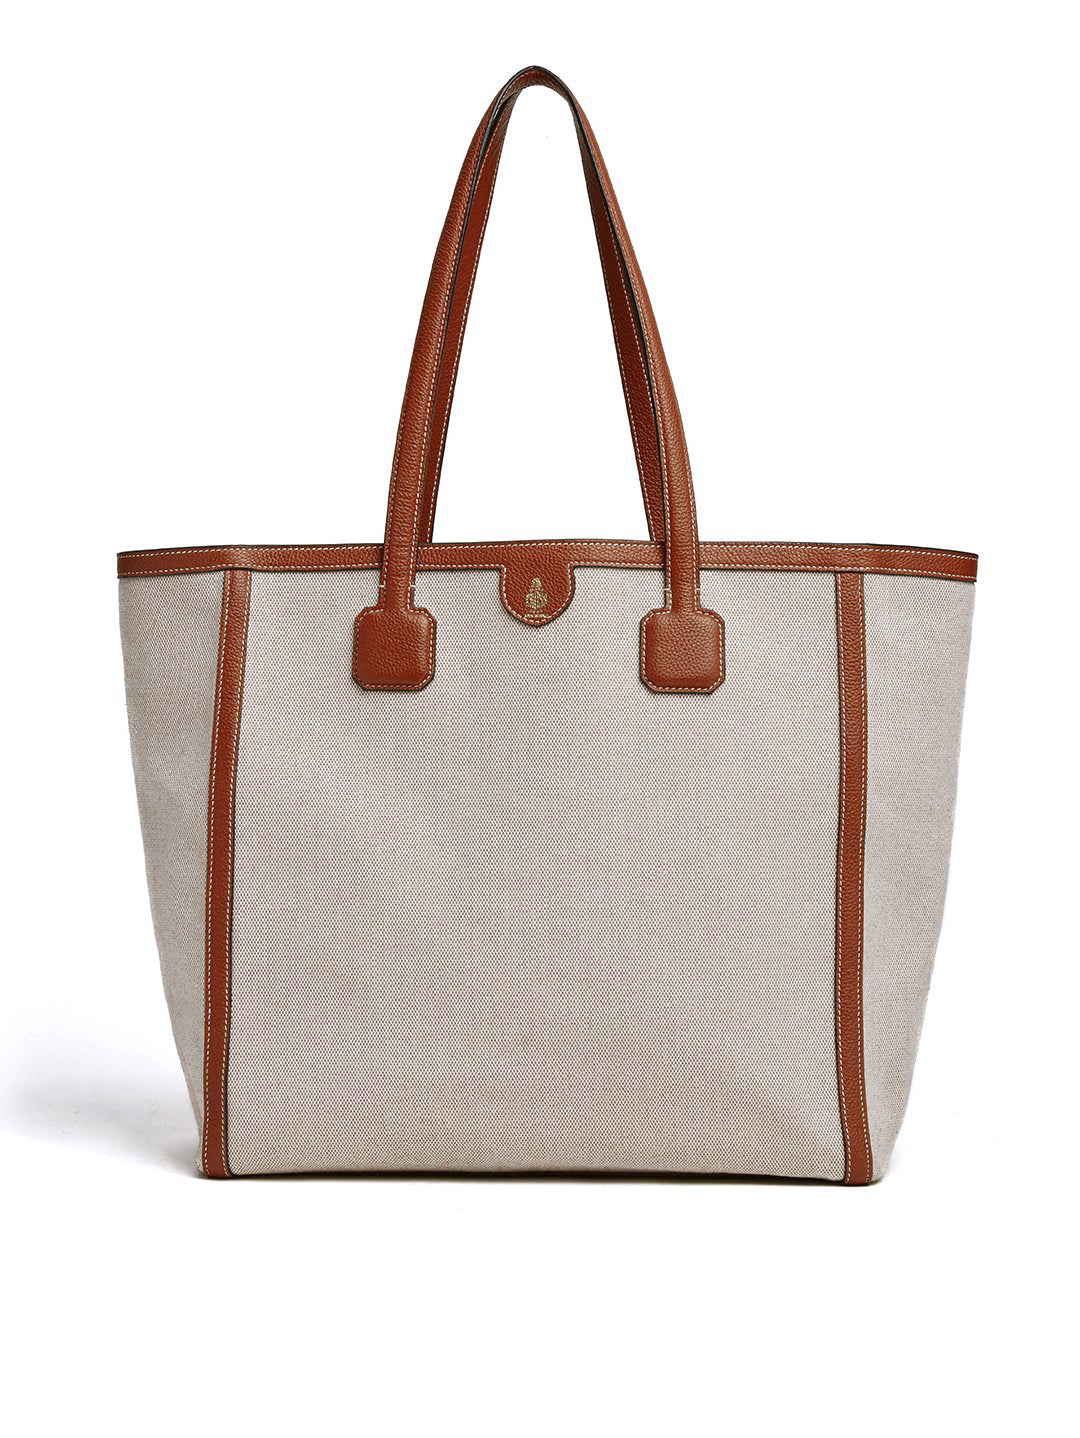 Mark Cross Antibes Birdseye & Leather Tote Bag Tumbled Grain Acorn / Birdseye Front